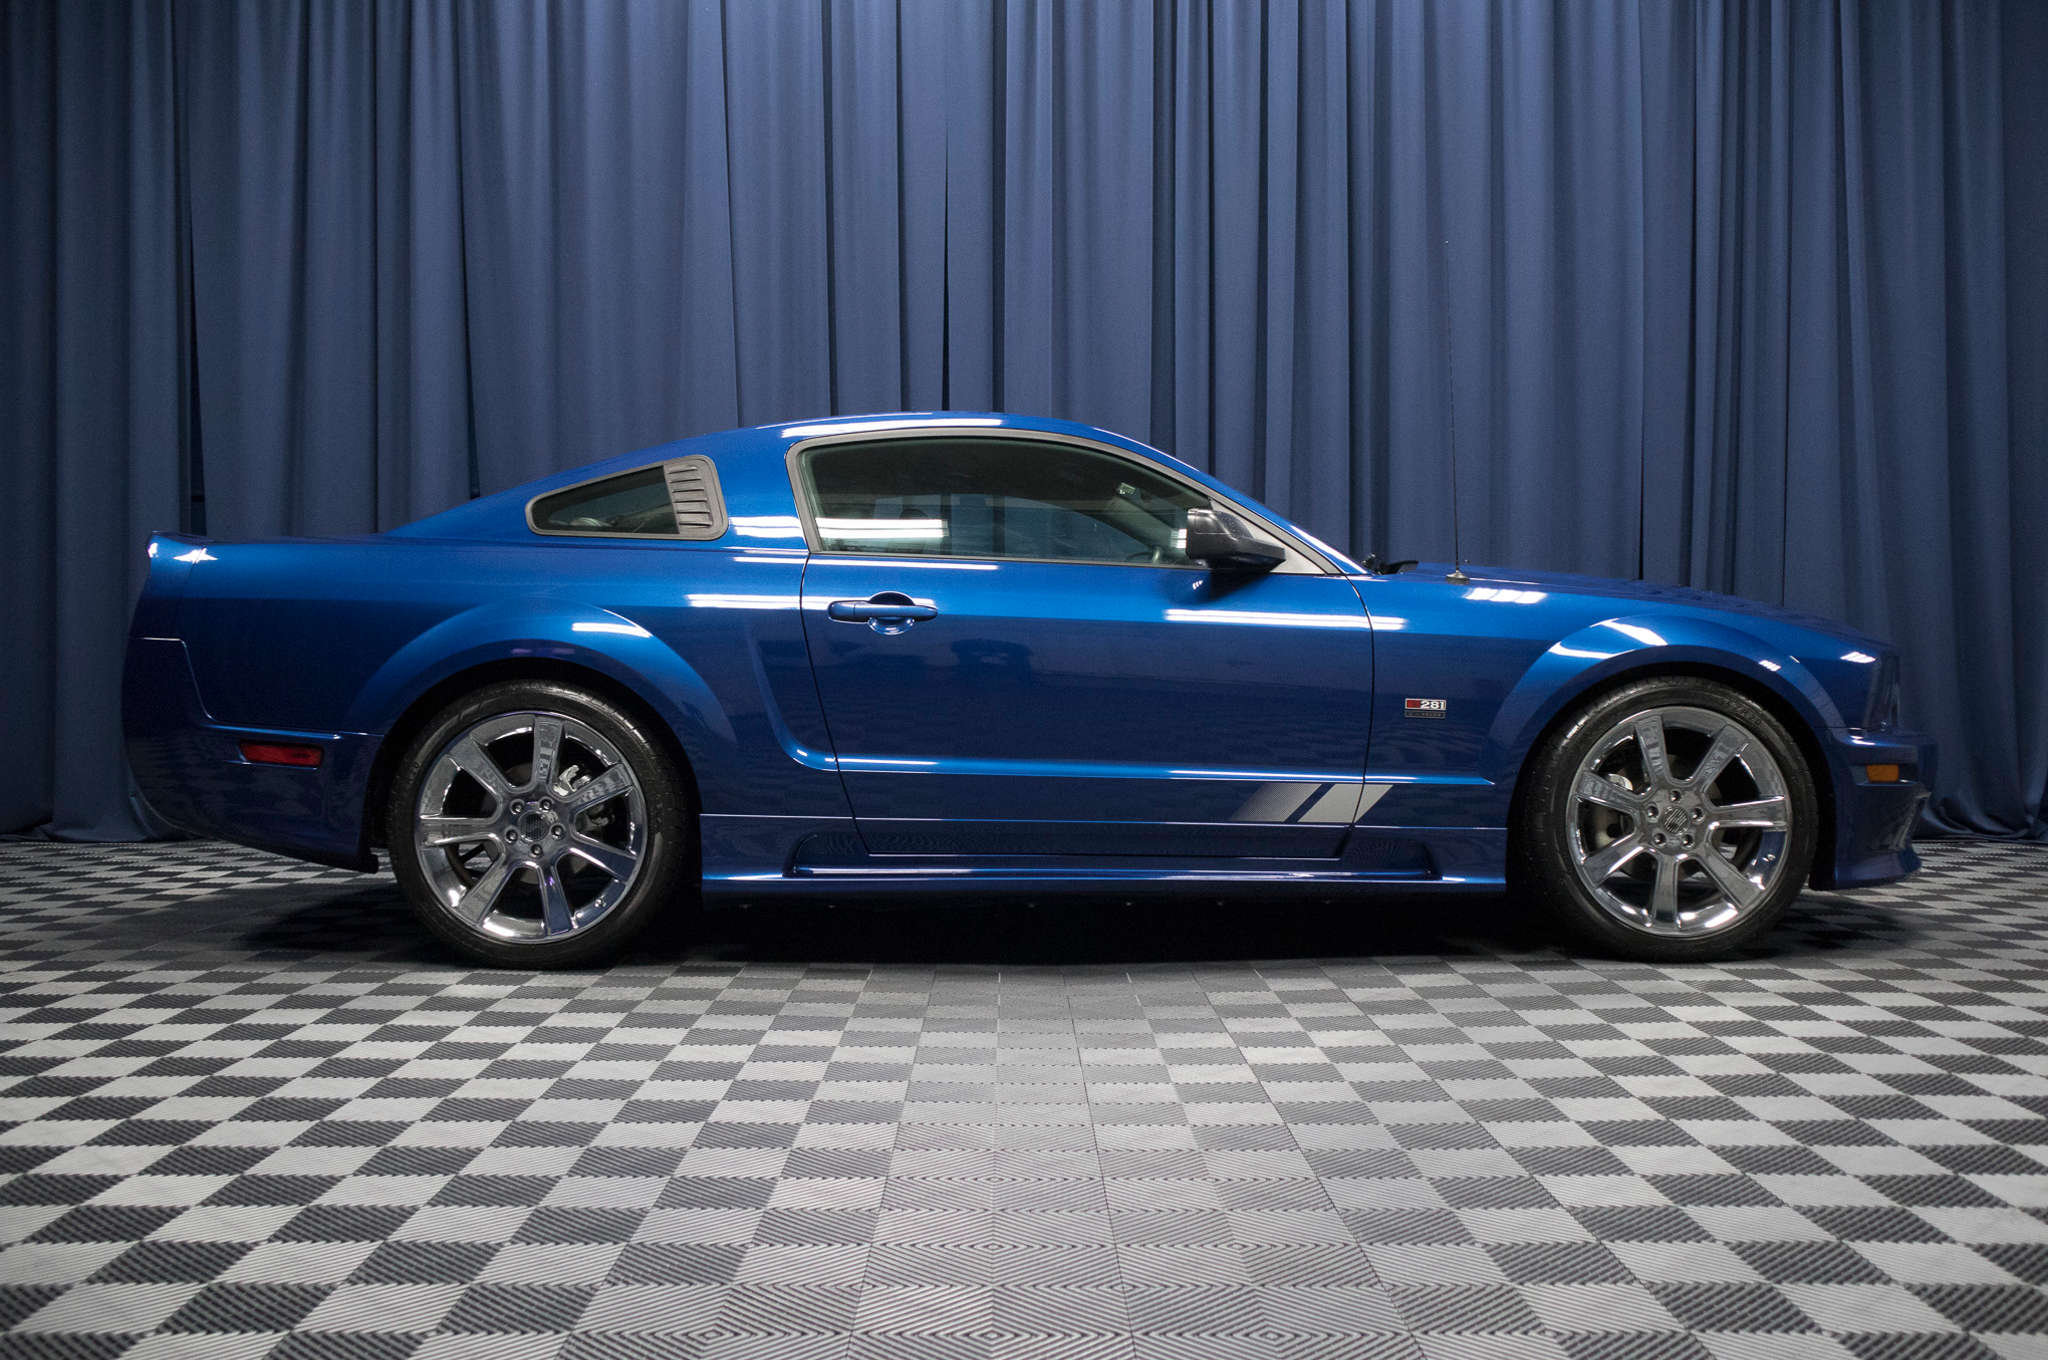 used 2006 ford mustang s281 saleen rwd coupe for sale 48660. Black Bedroom Furniture Sets. Home Design Ideas